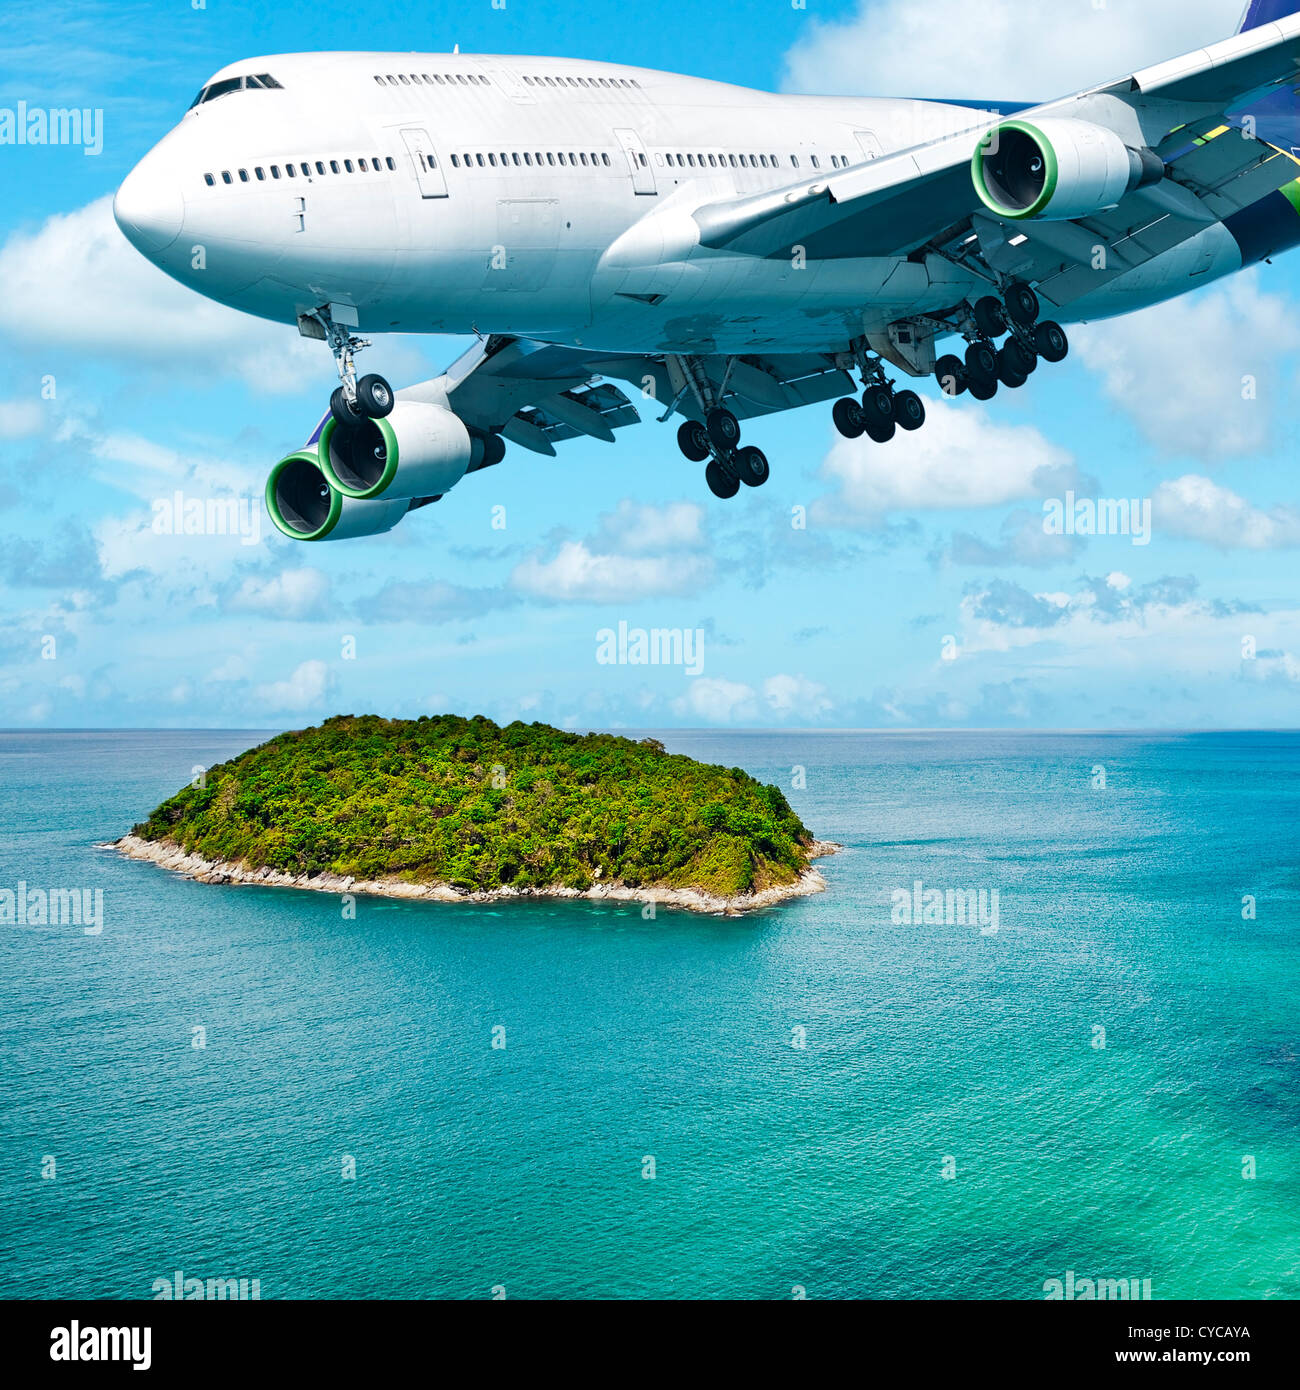 Jumbo jet over the tropical island. Square composition. Stock Photo